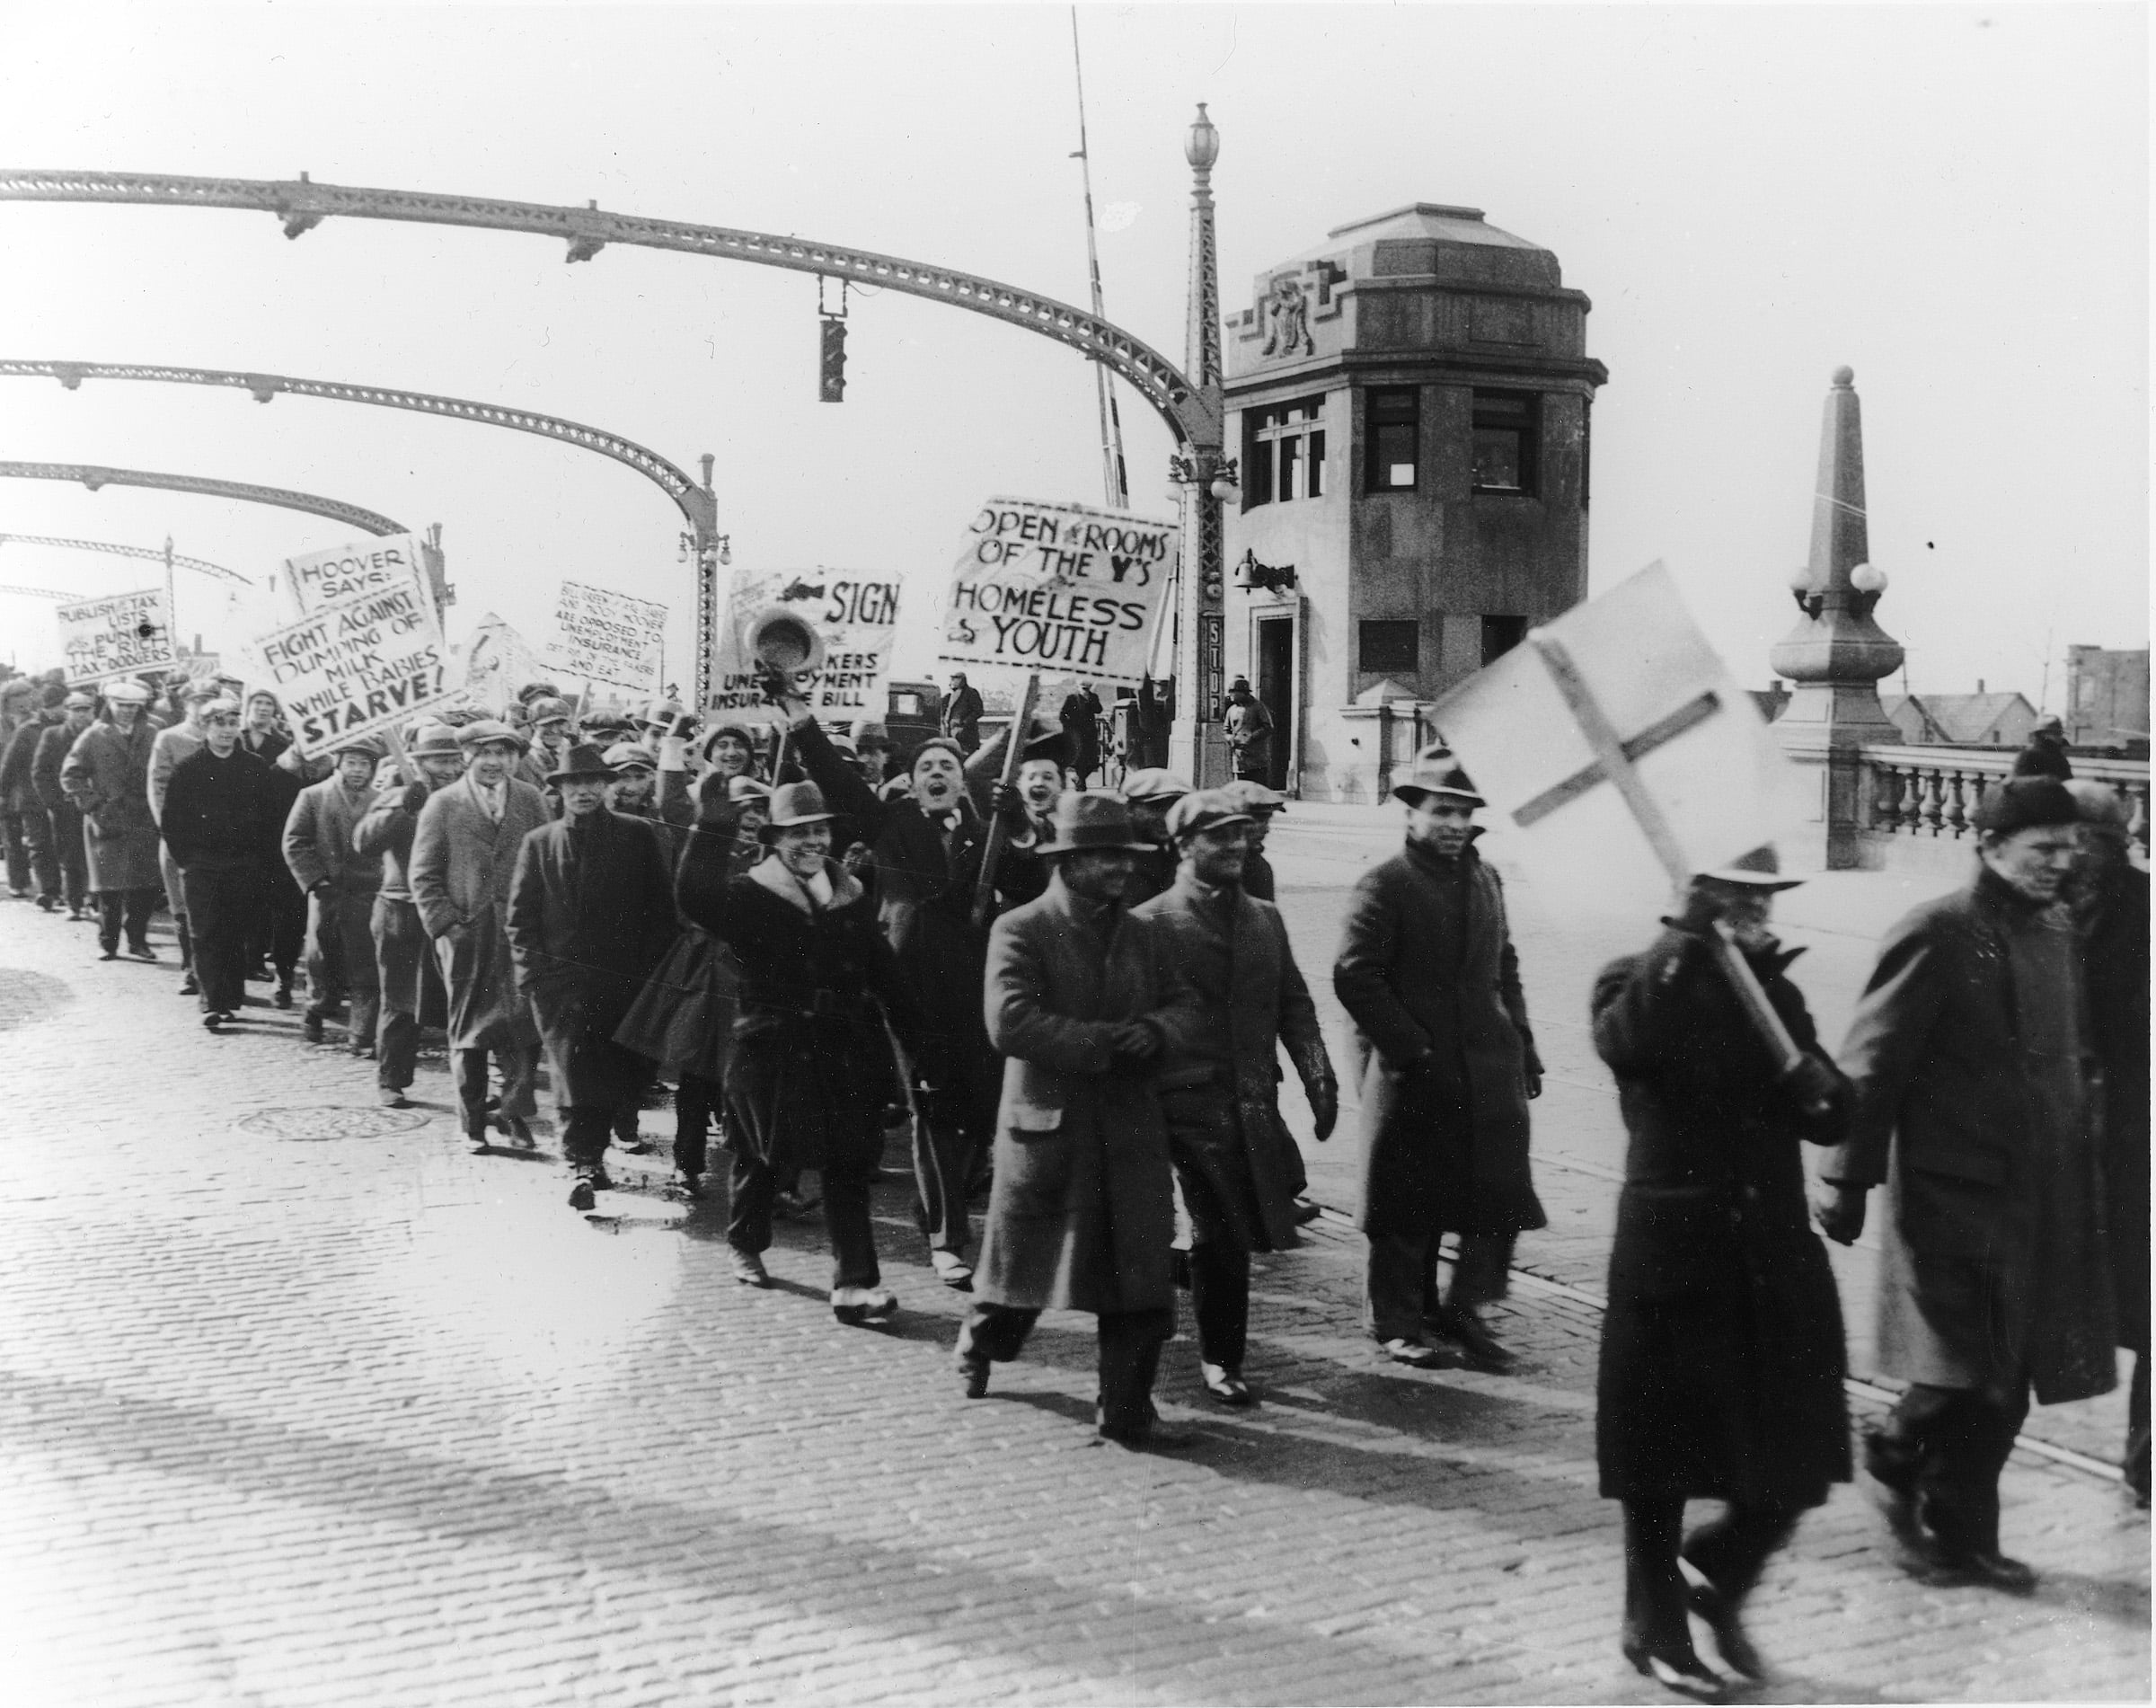 HUNGER MARCHERS head toward Dearborn and a fatal confrontation with police and Ford security men on March 7, 1932.  Photo: Walter Reuther Library, Wayne State University